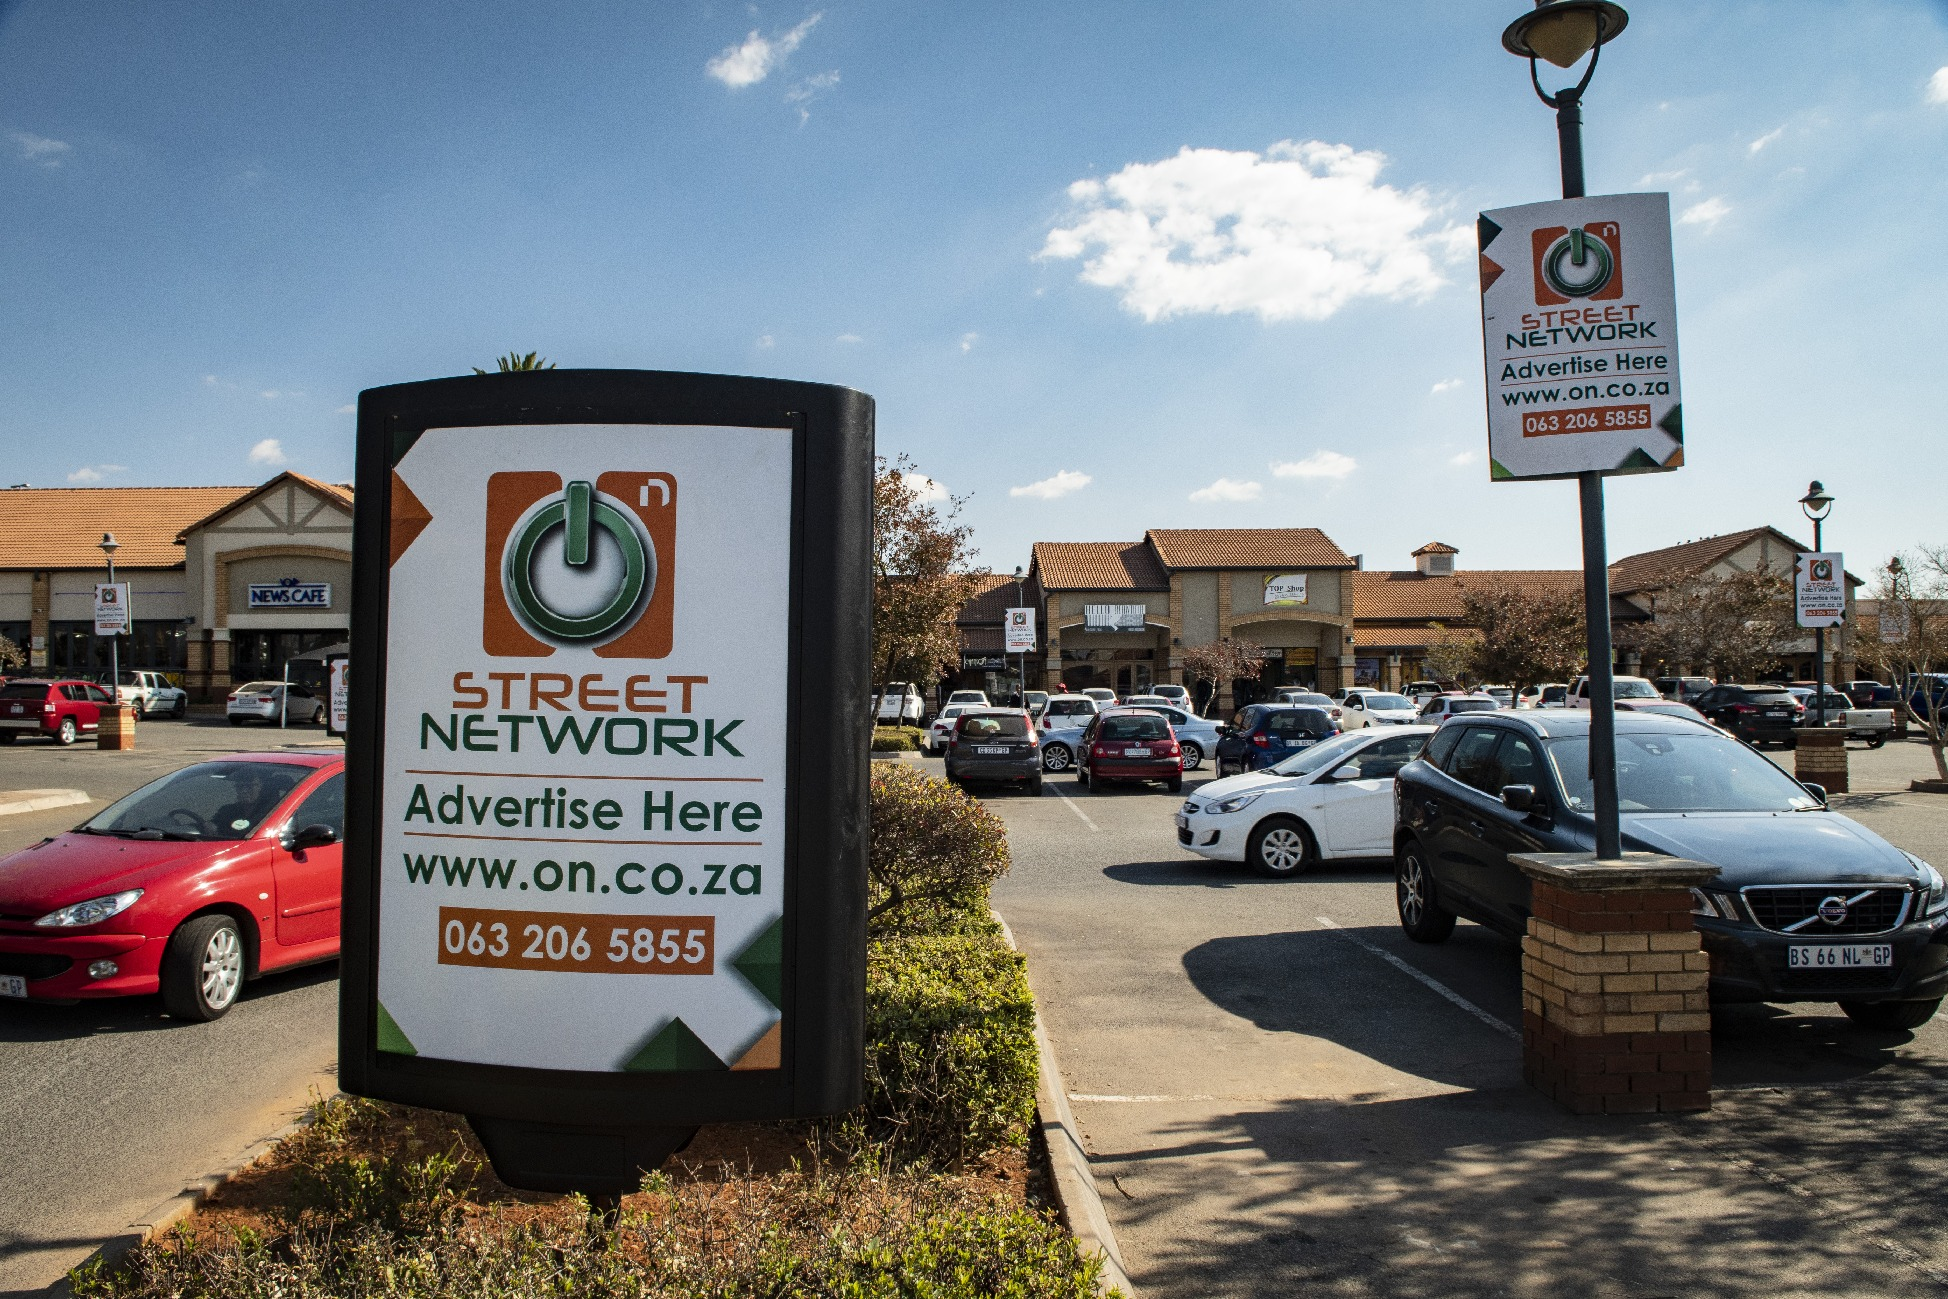 Mall Ads partners with Street Network to provide extended service offering